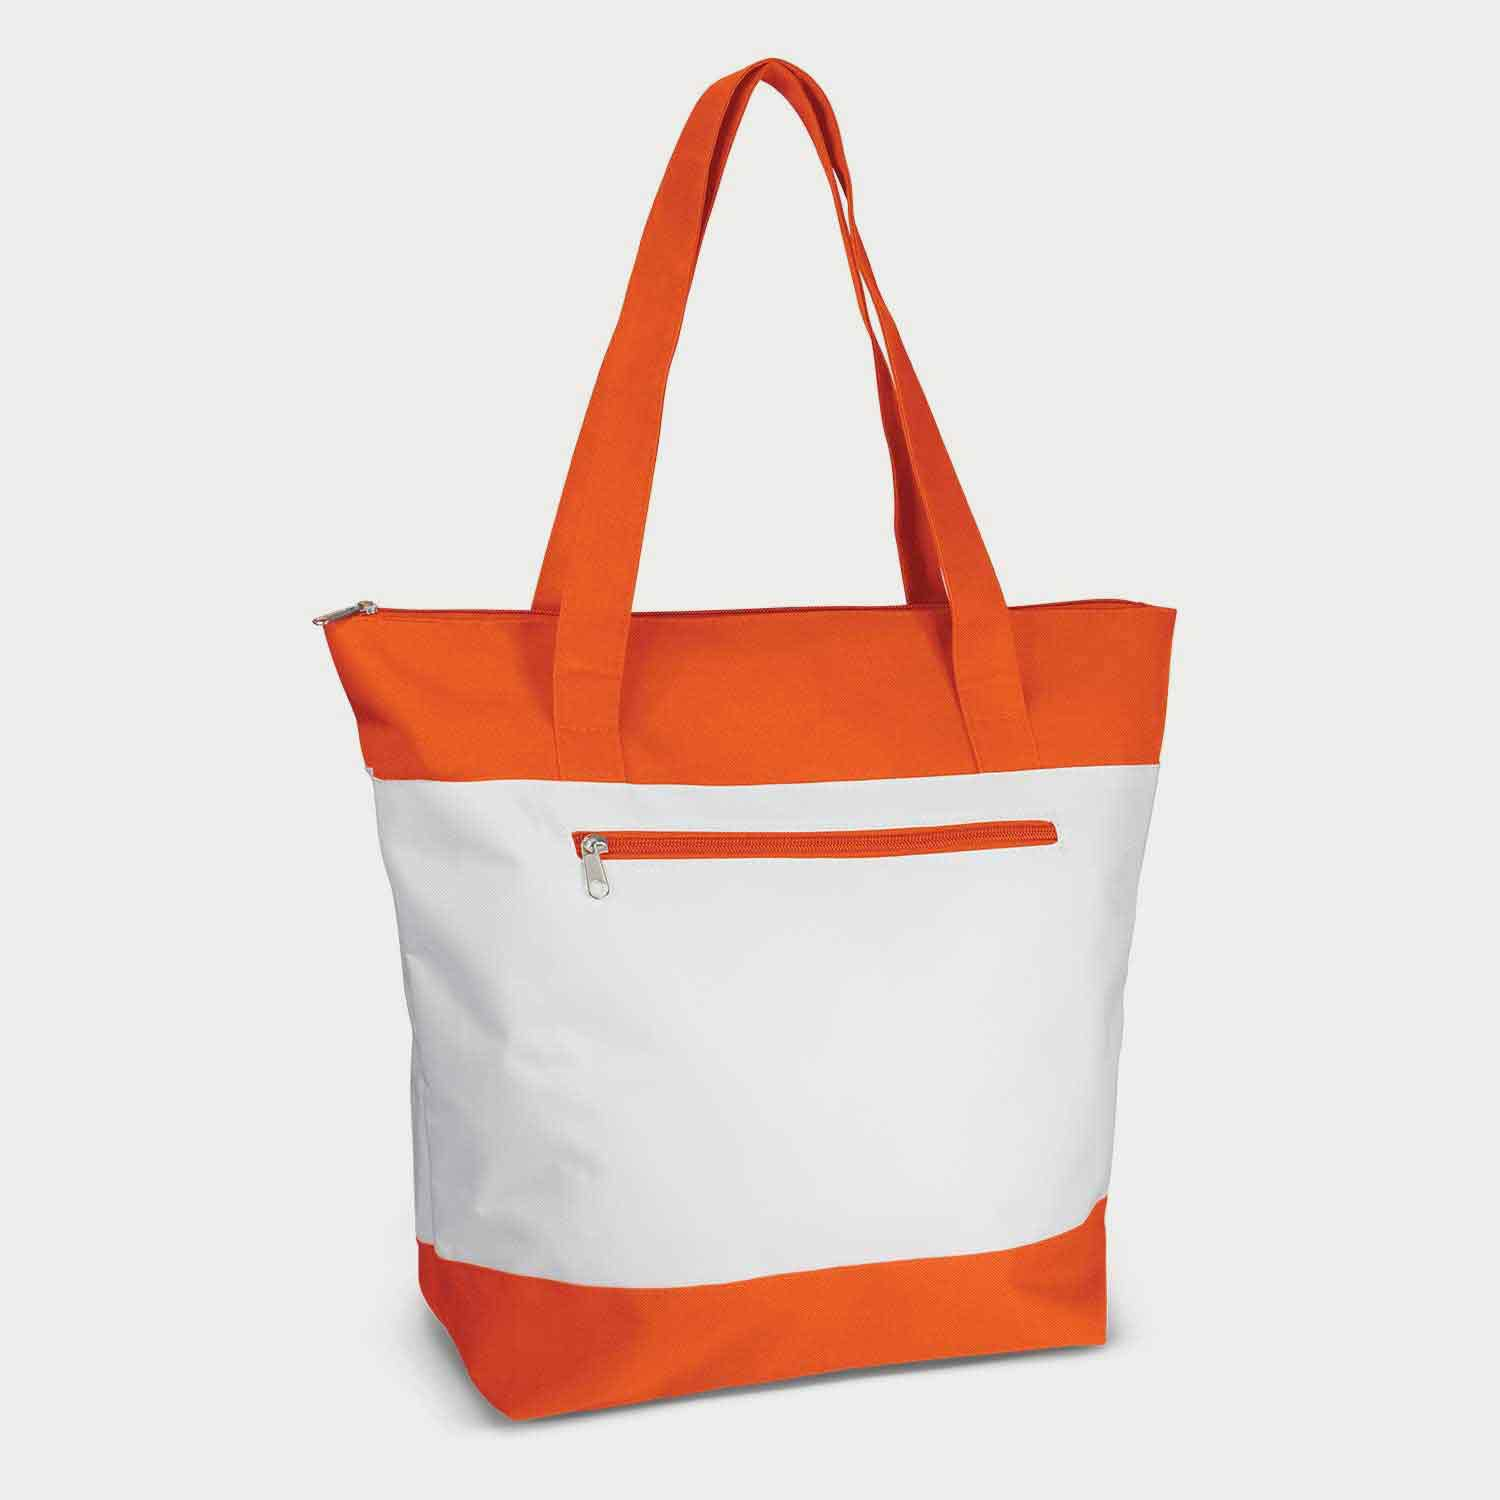 Orange and white tote handbag designs